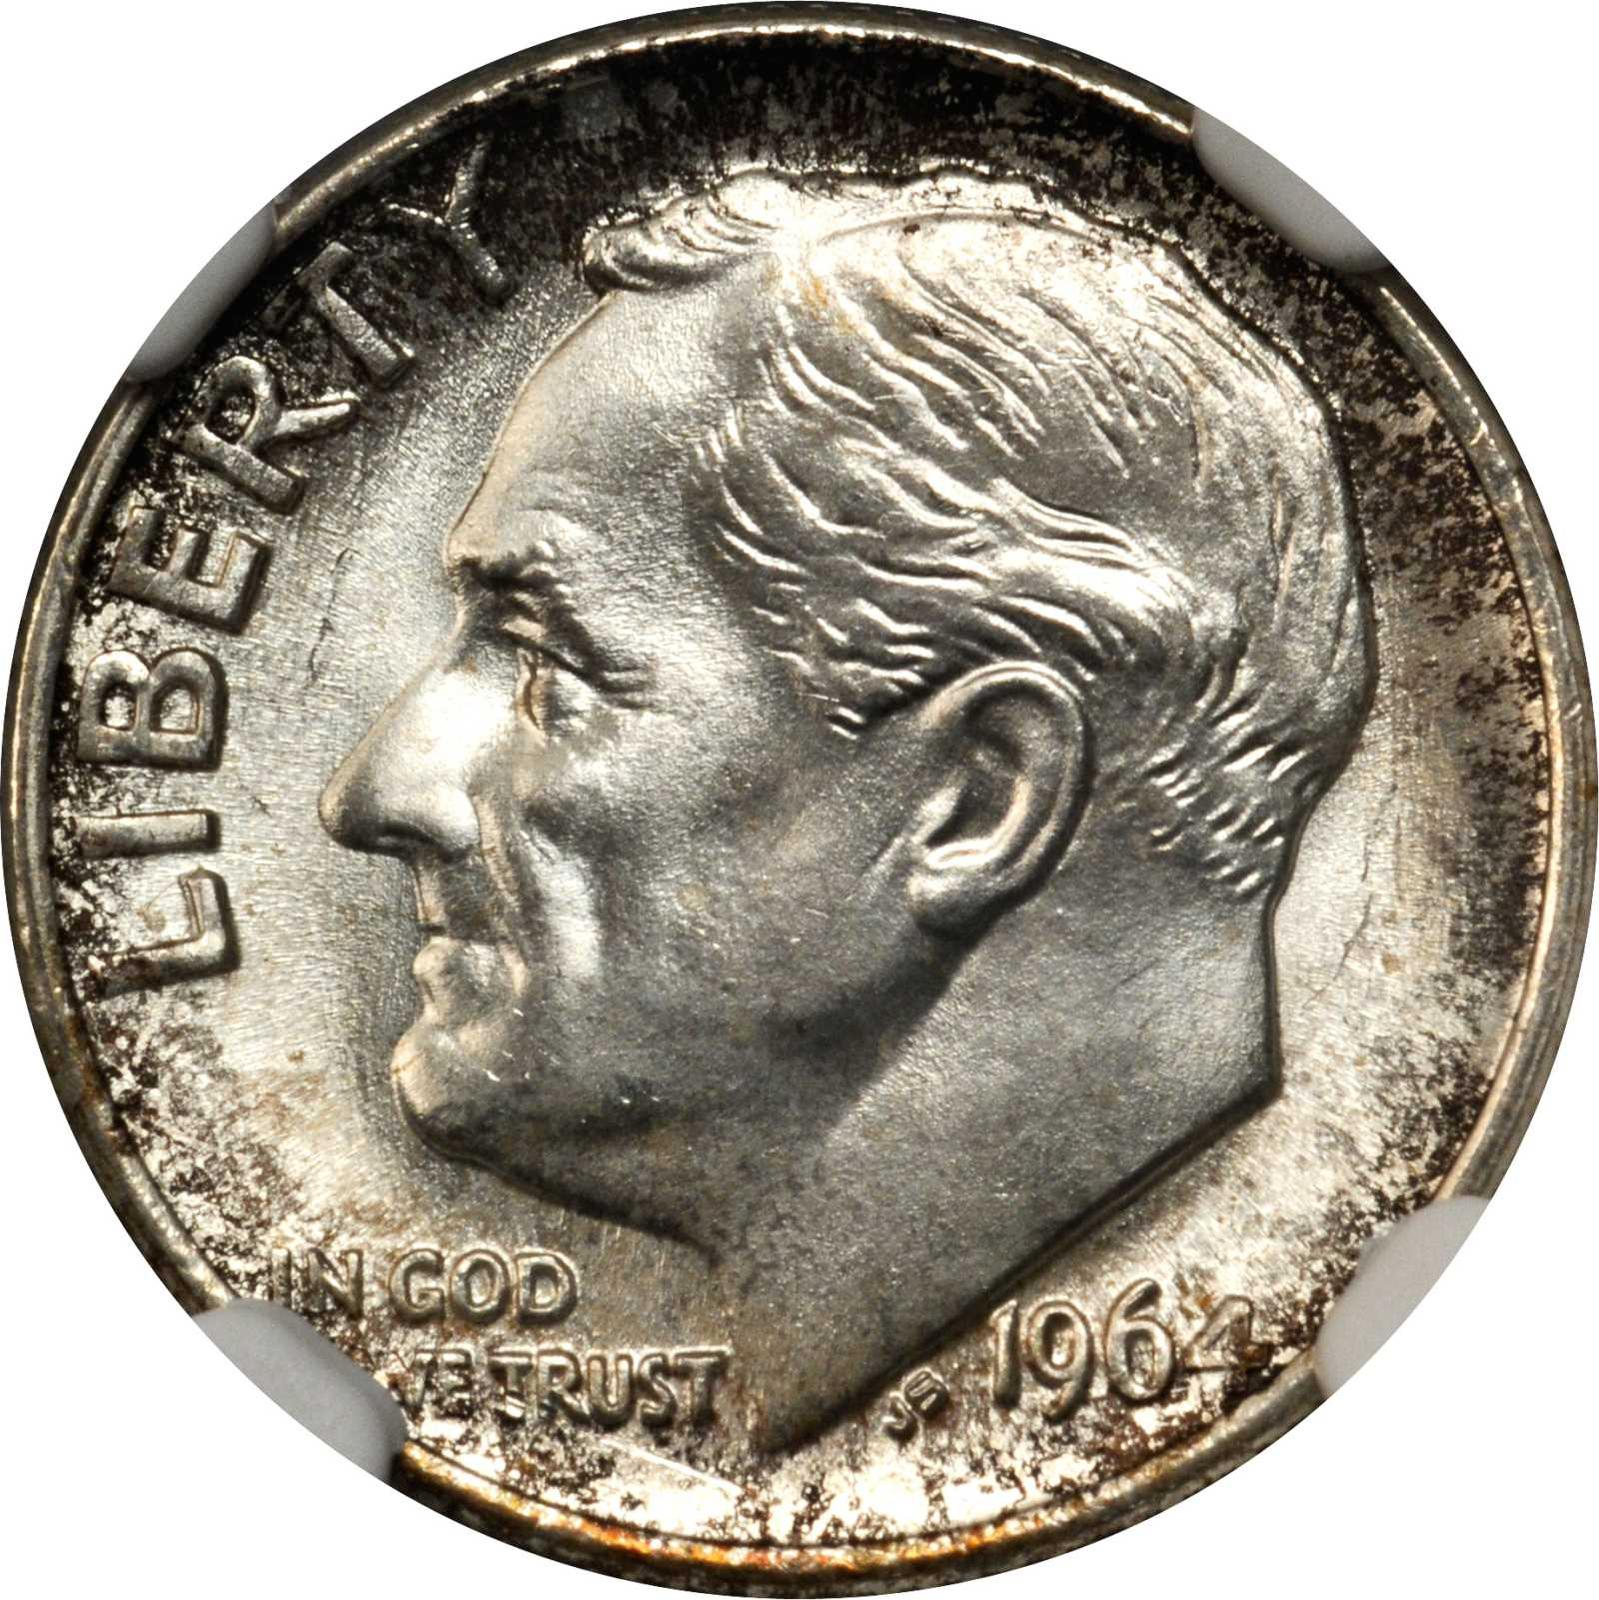 Value of 1964 Dime | Sell and Auction, Rare Coin Buyers